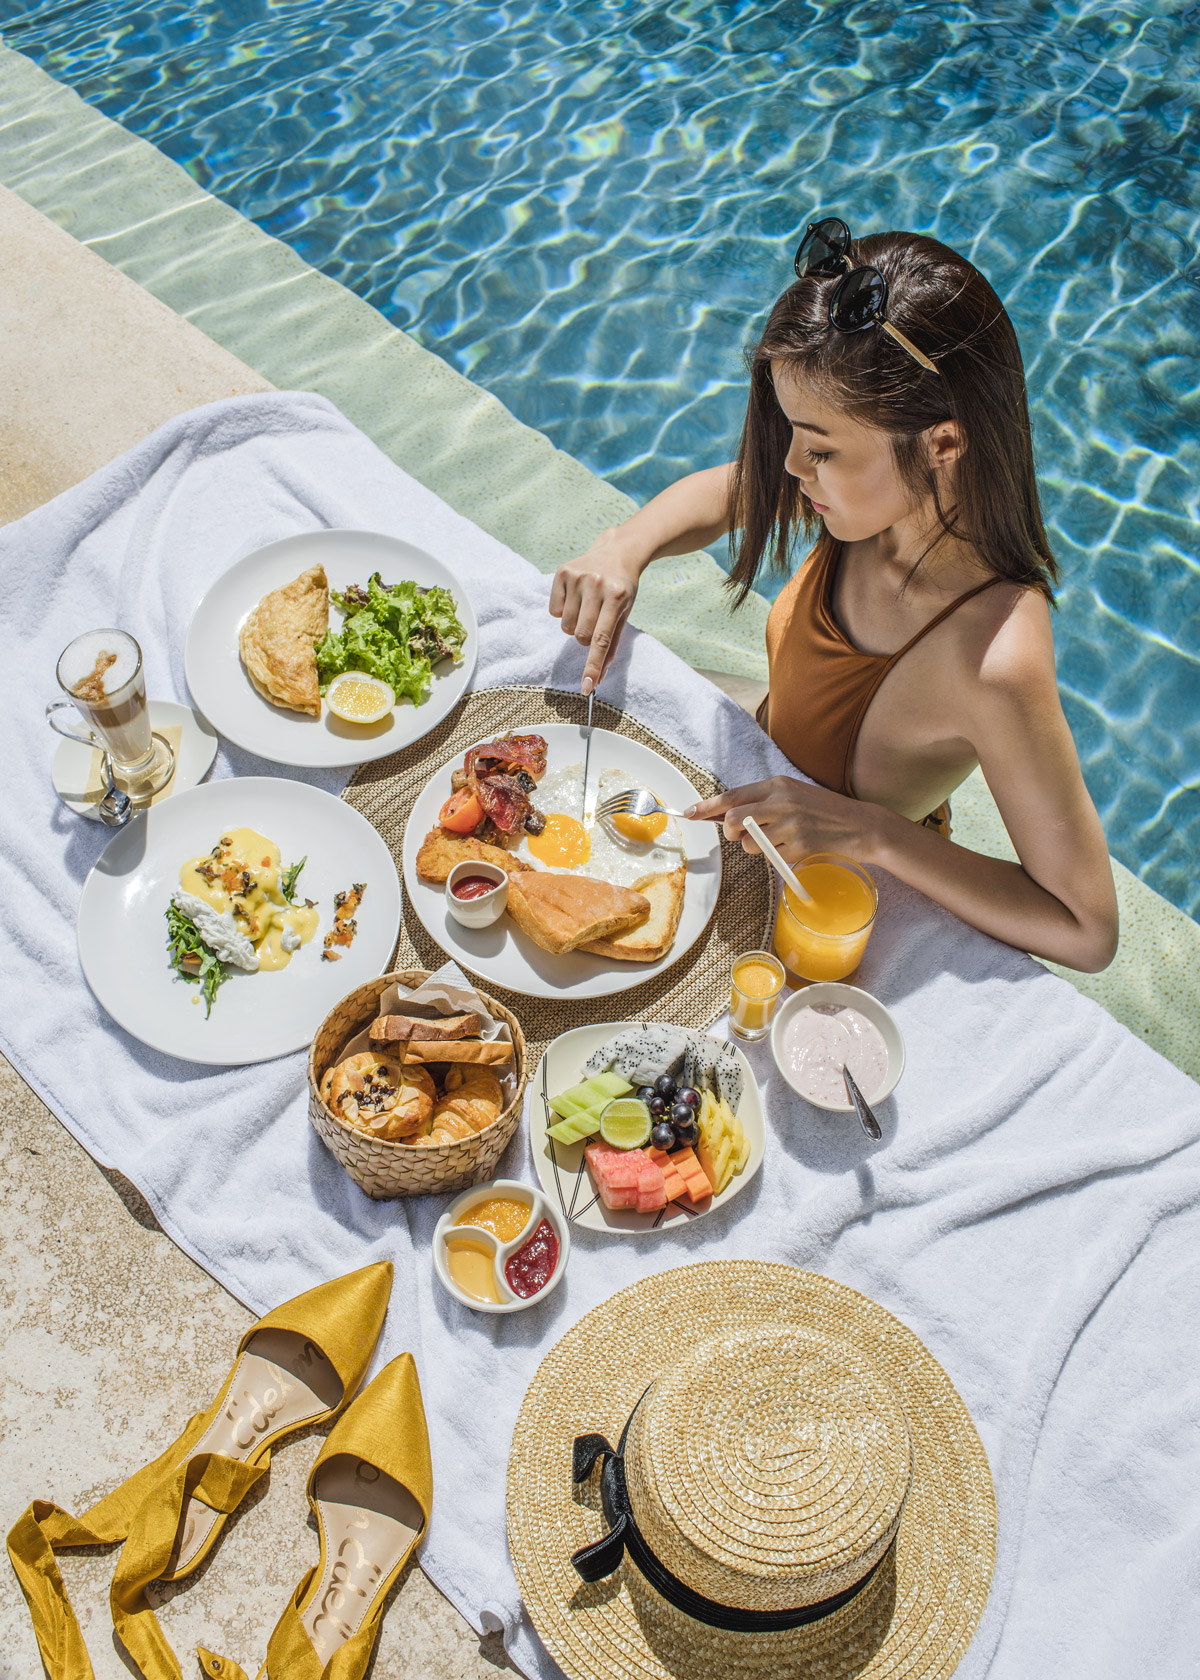 Fashion and travel blogger influencer Jenny Tsang of Tsangtastic traveling in Bali, Indonesia, wearing MIDSOMMAR Swim, enjoying breakfast at the pool.